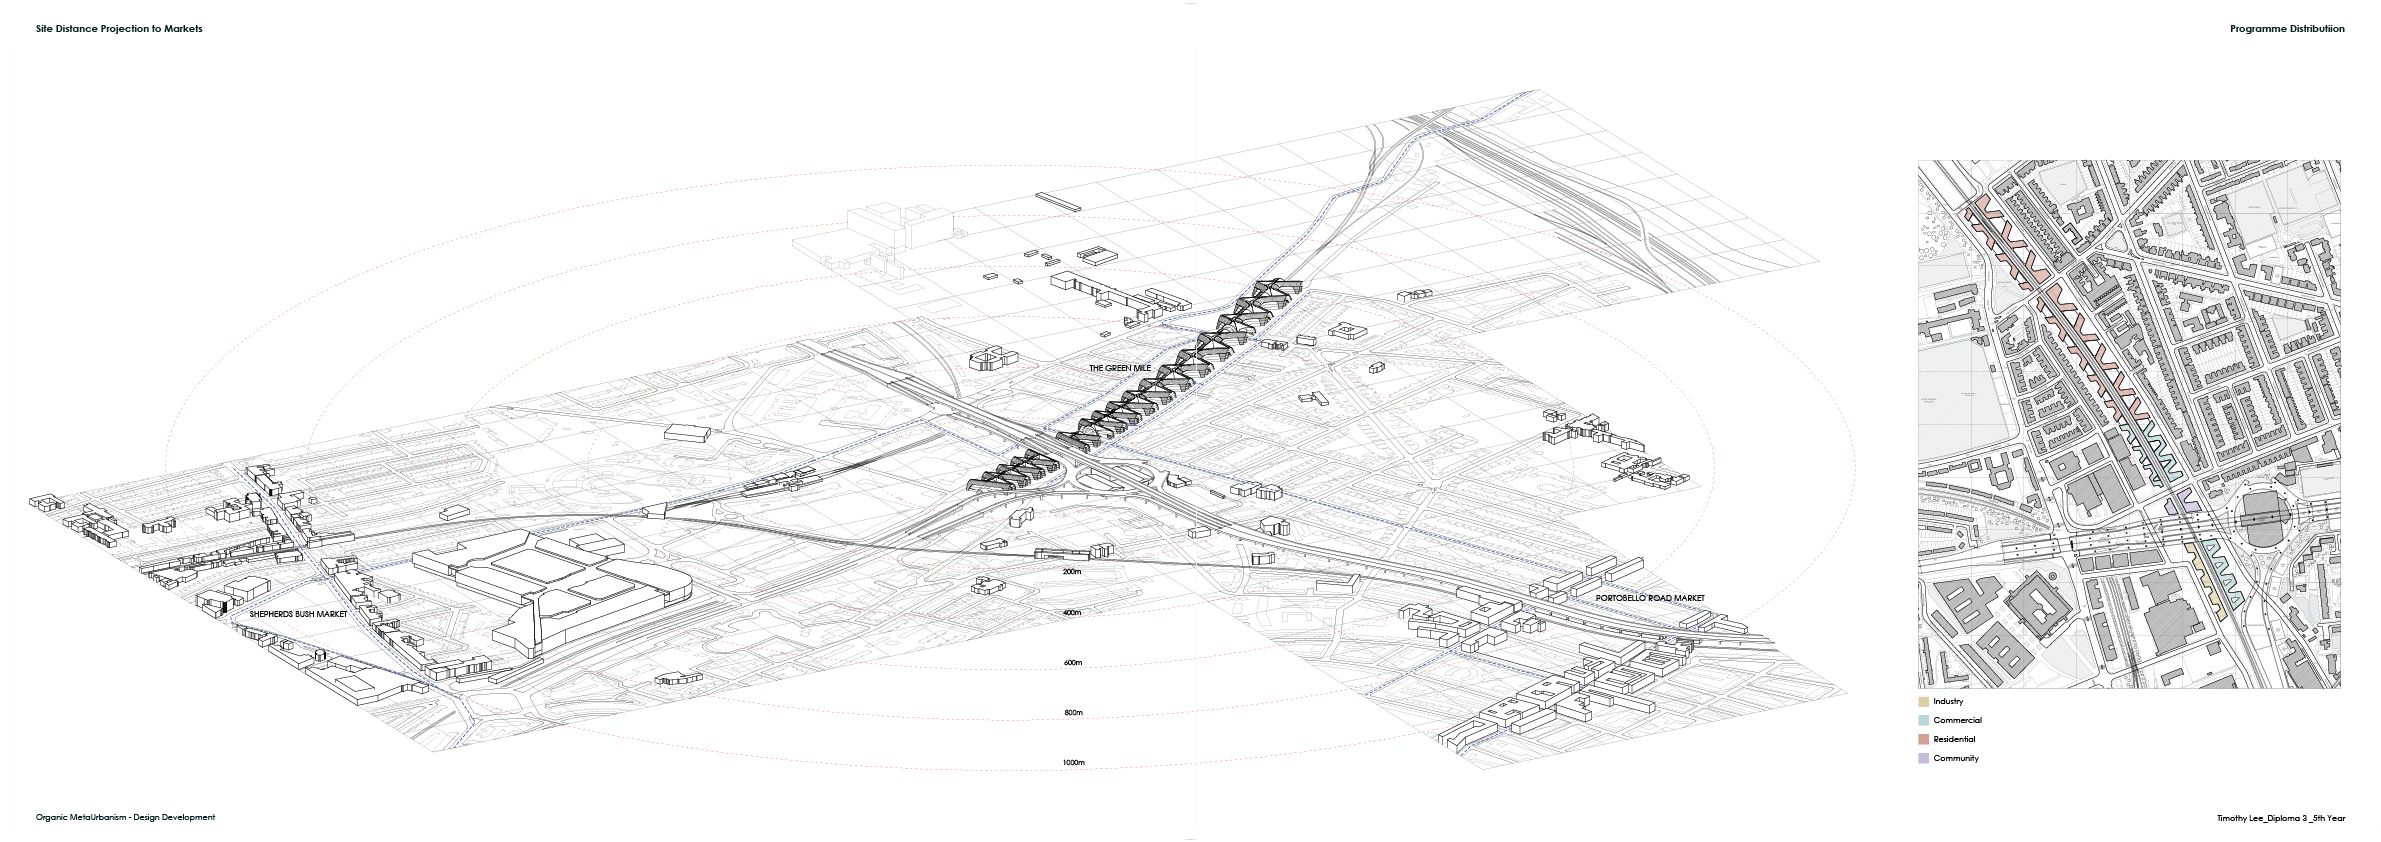 Projects Review 2010 Diploma 3 Timothy Lee